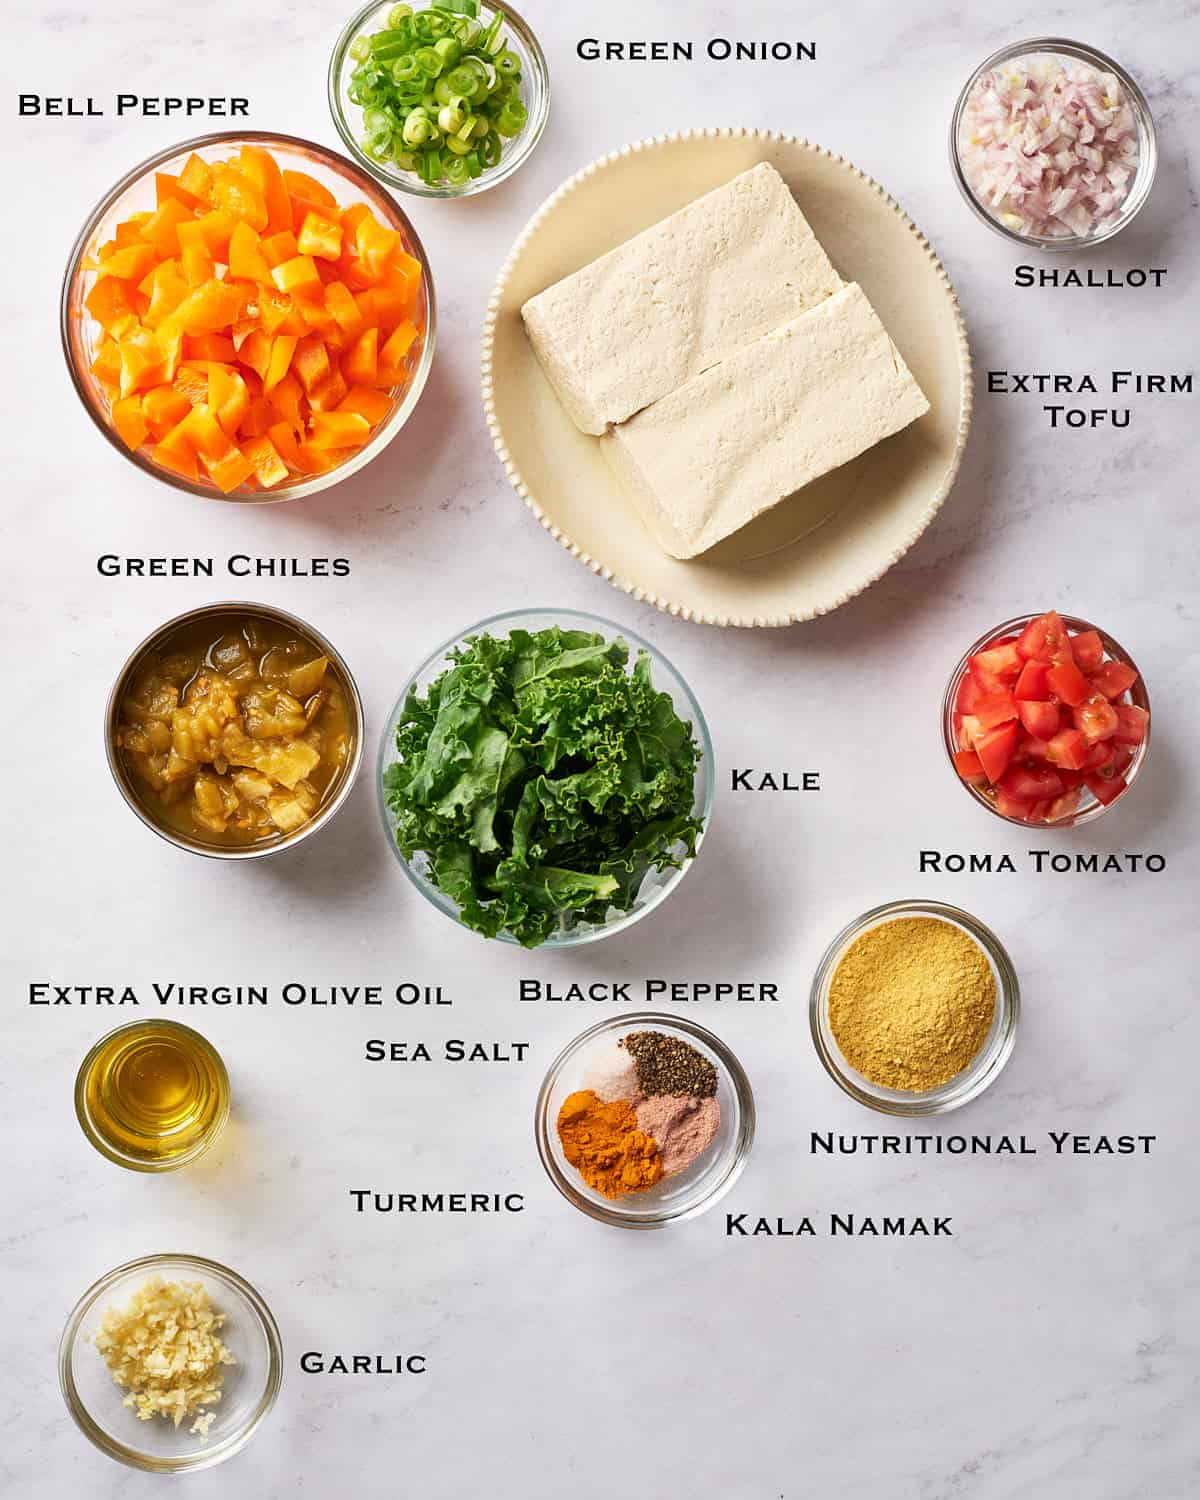 Top down view of ingredients for scrambled tofu